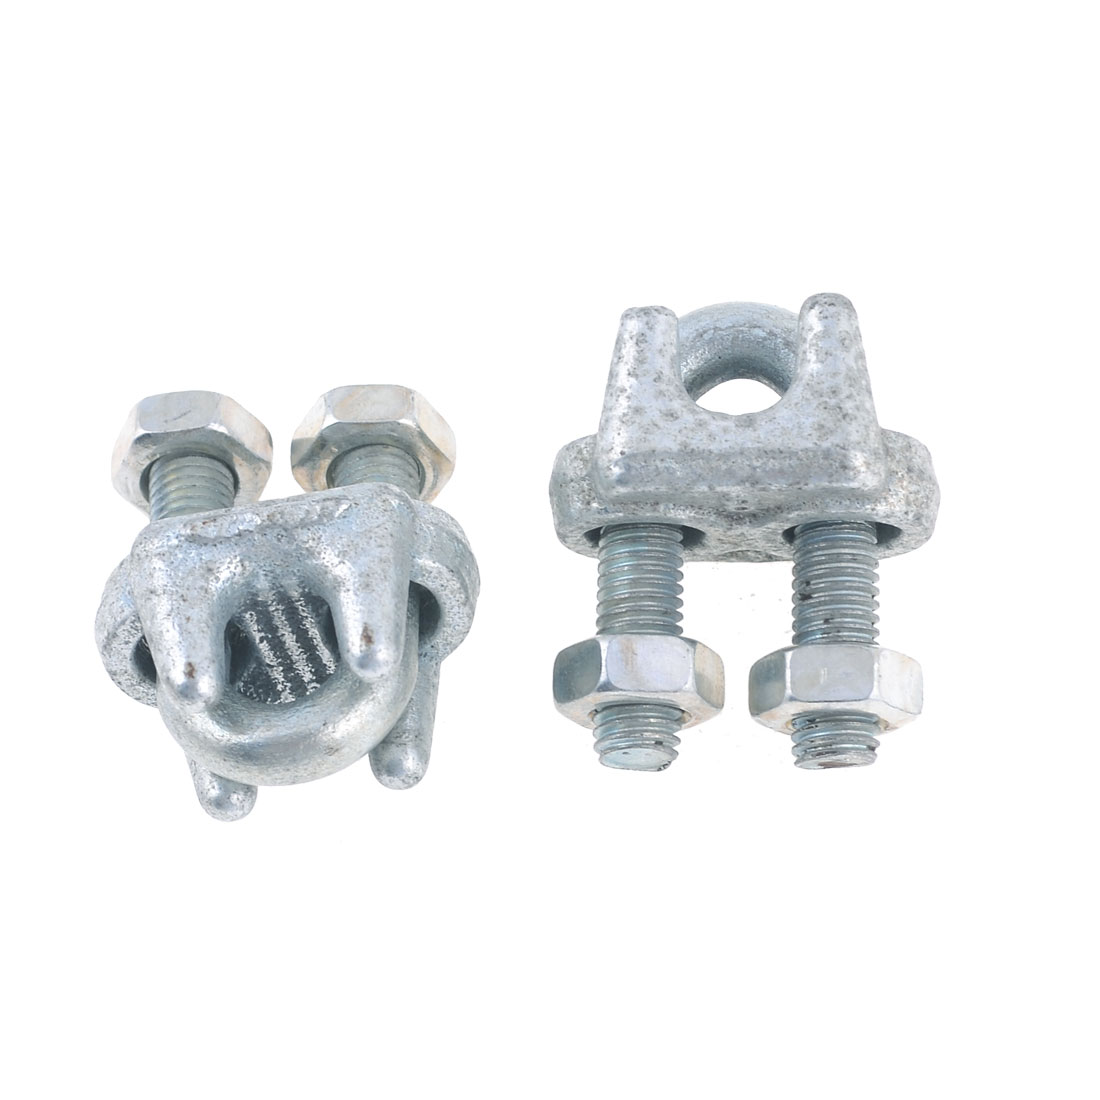 "2 Pcs Silver Tone Screwed Fastener Clamp Clip for 8mm 5/16"" Wire Rope"